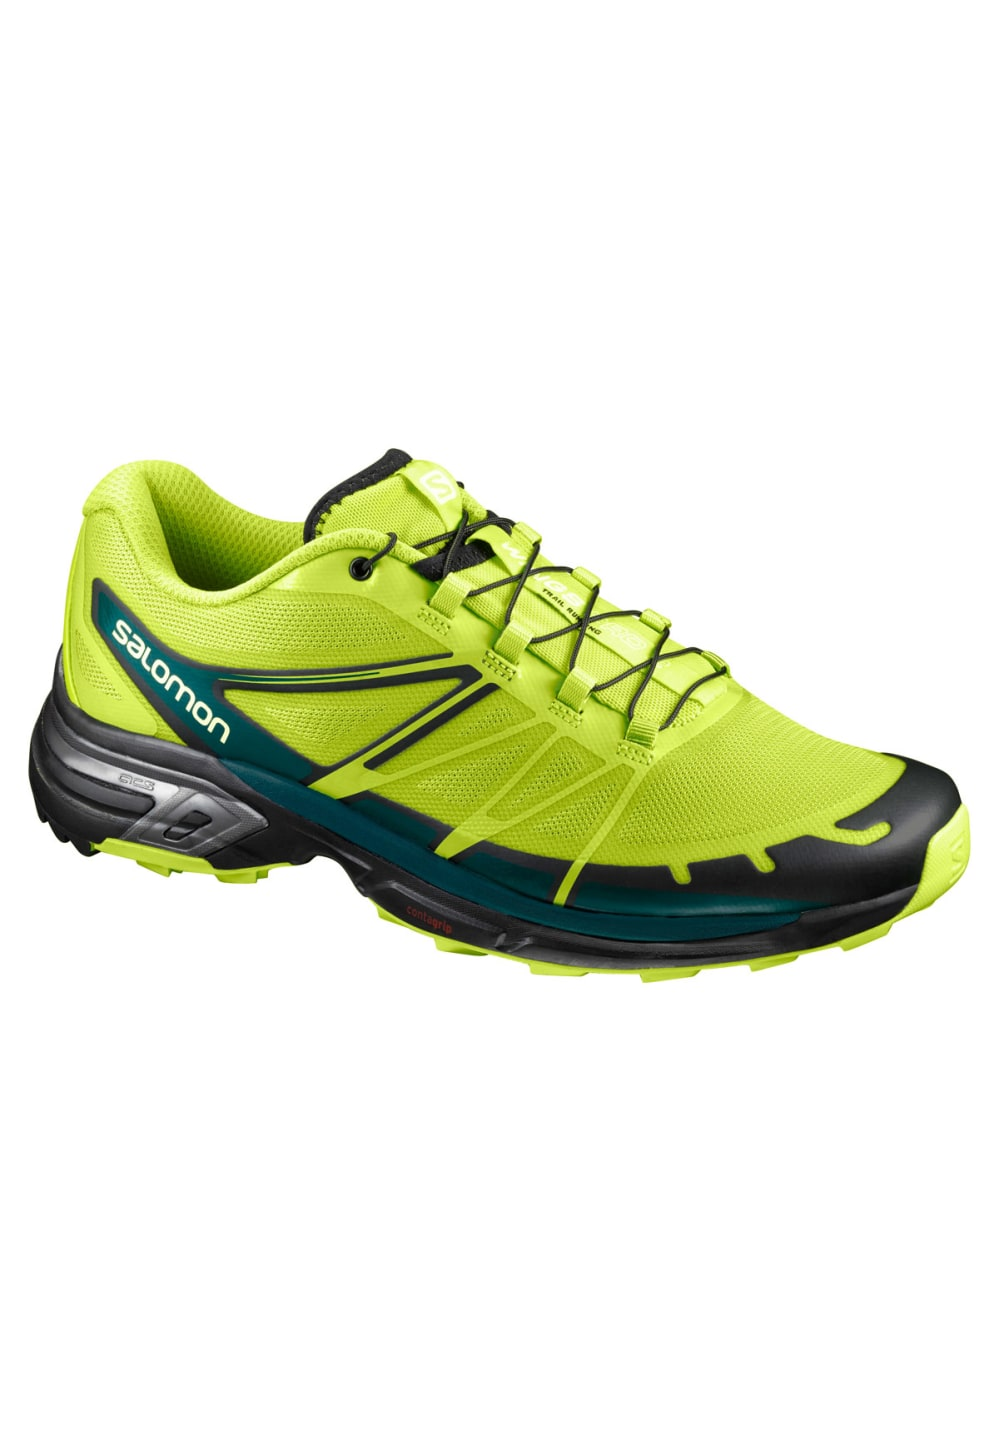 énorme réduction 4c587 71f1b Salomon Wings Pro 2 - Running shoes for Men - Yellow